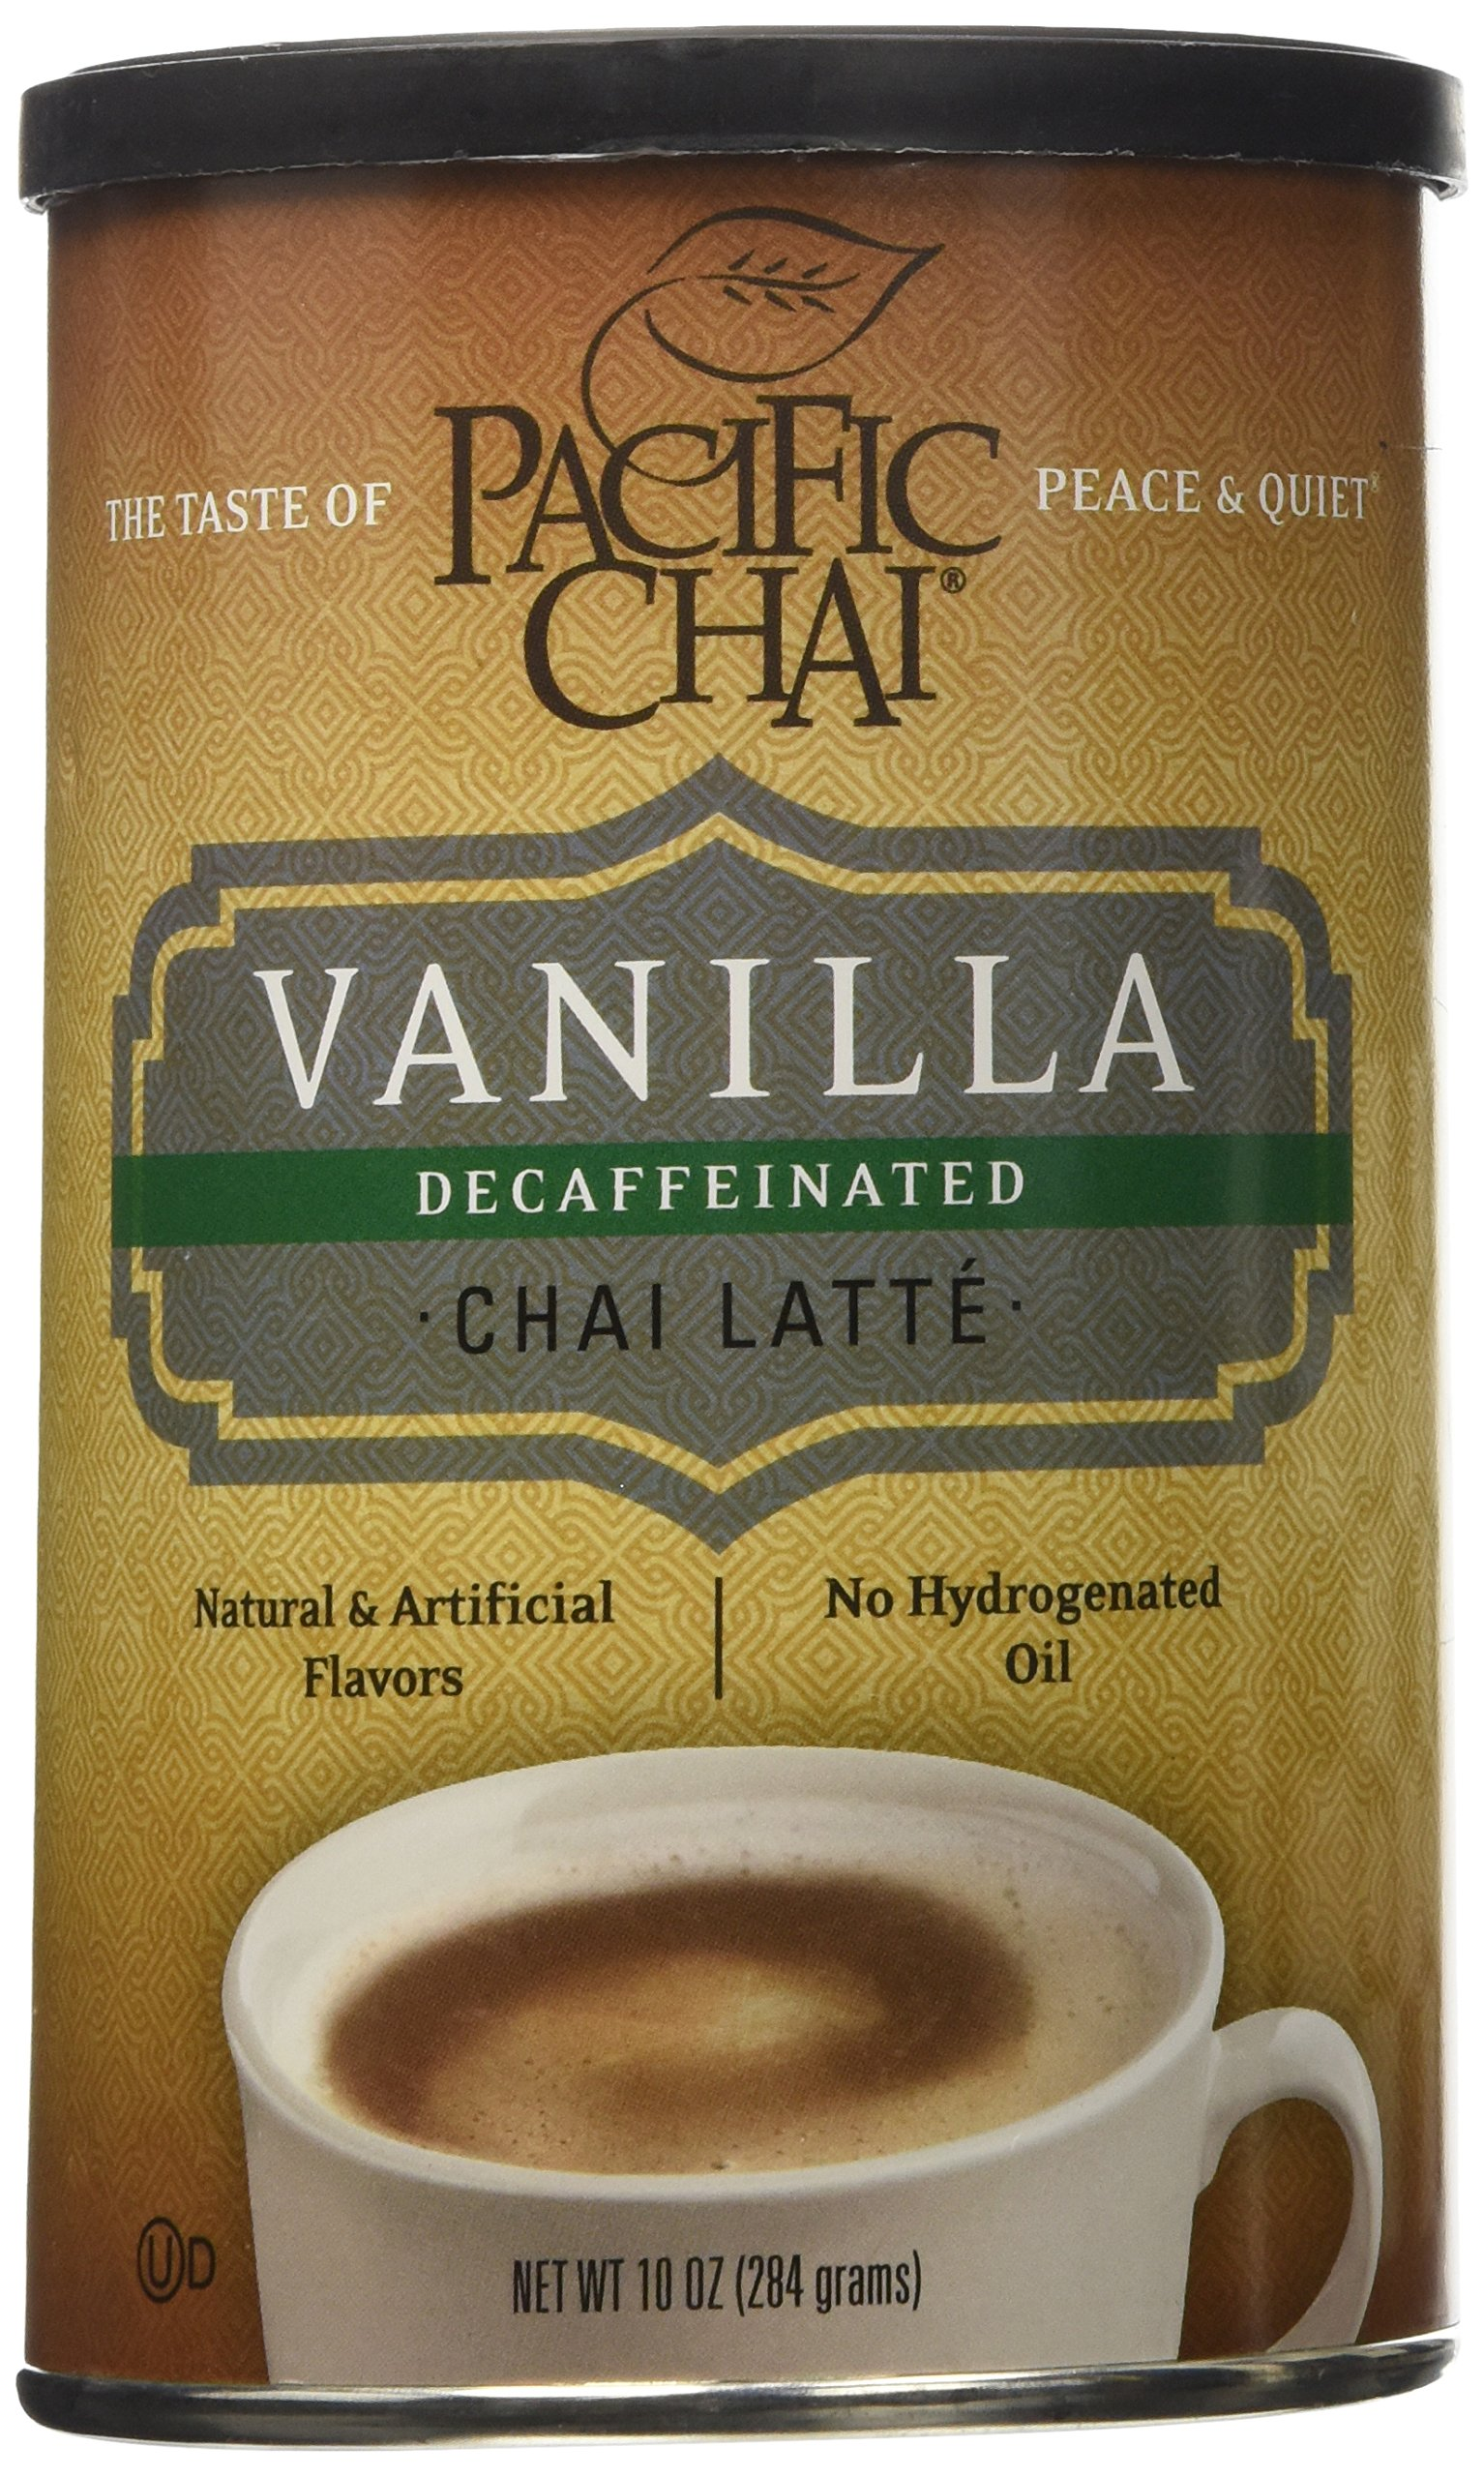 David Rio Chai Mix Decaf Tiger Spice 14 Ounce Picco Latte Matcha Green Tea Can Pacific Decaffeinated Vanilla Canisters 10 Oz